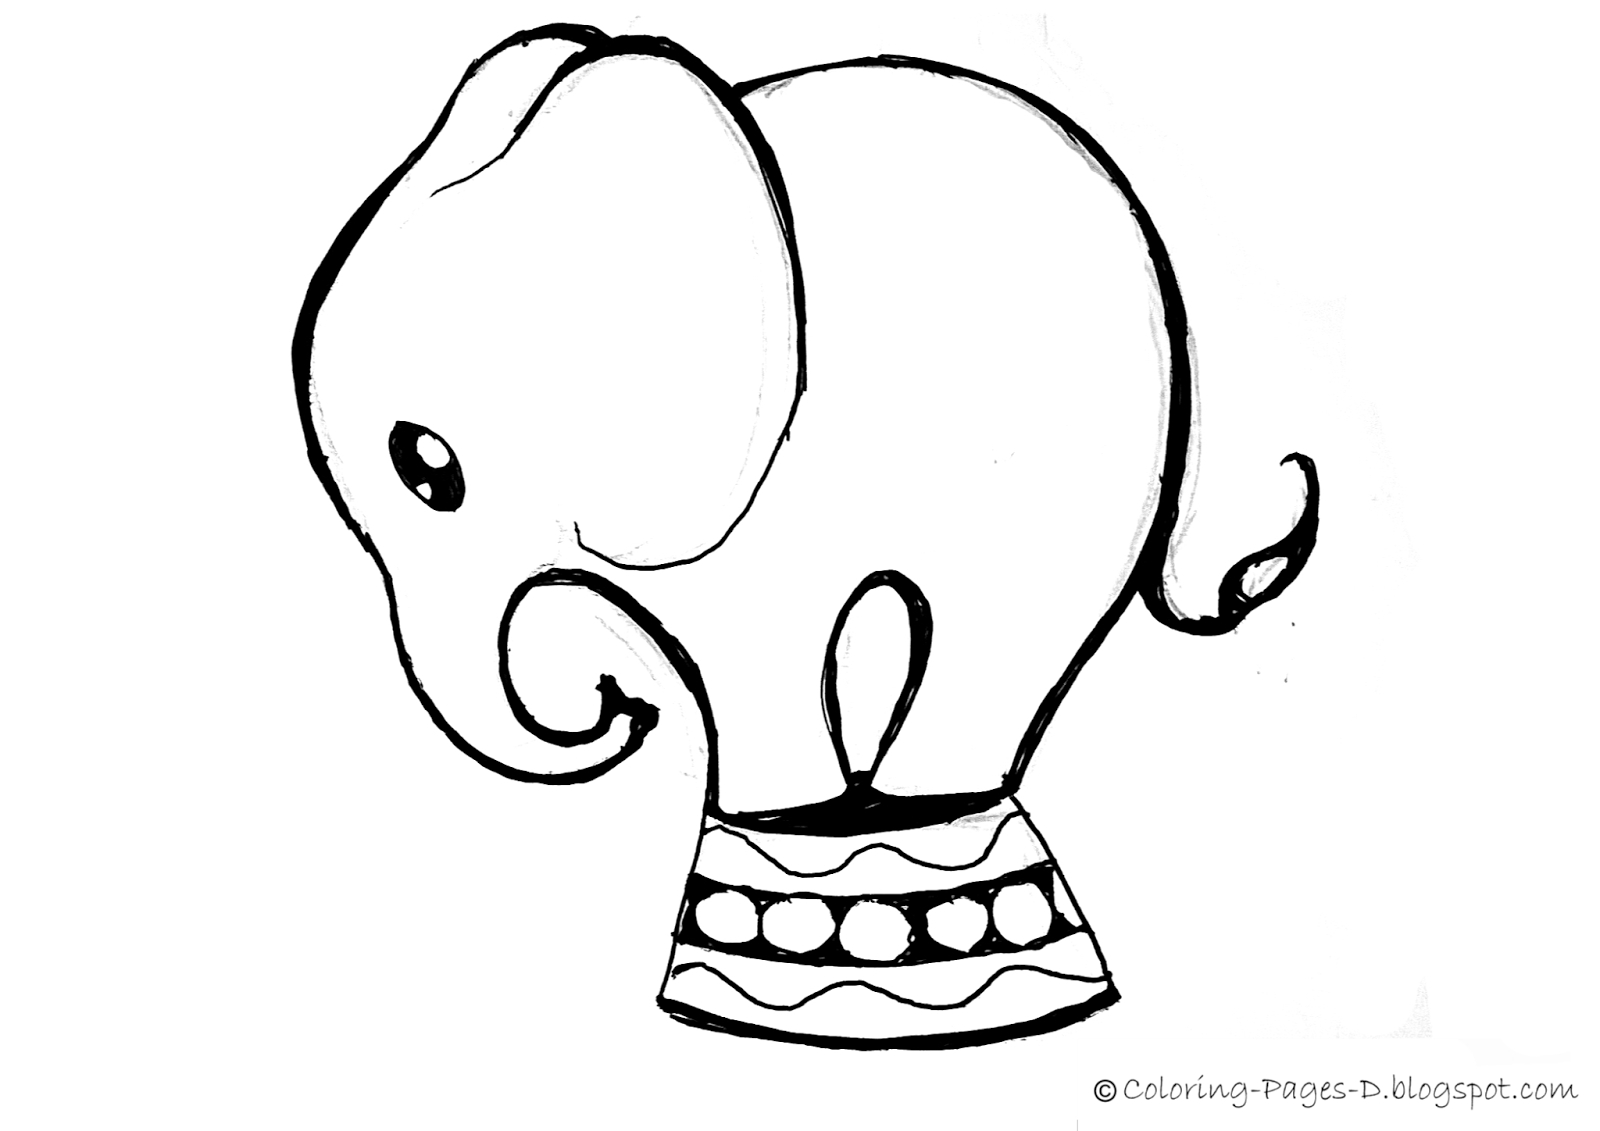 simple baby elephant coloring pages animal coloring pages for kids elephant coloring page baby pages coloring elephant simple